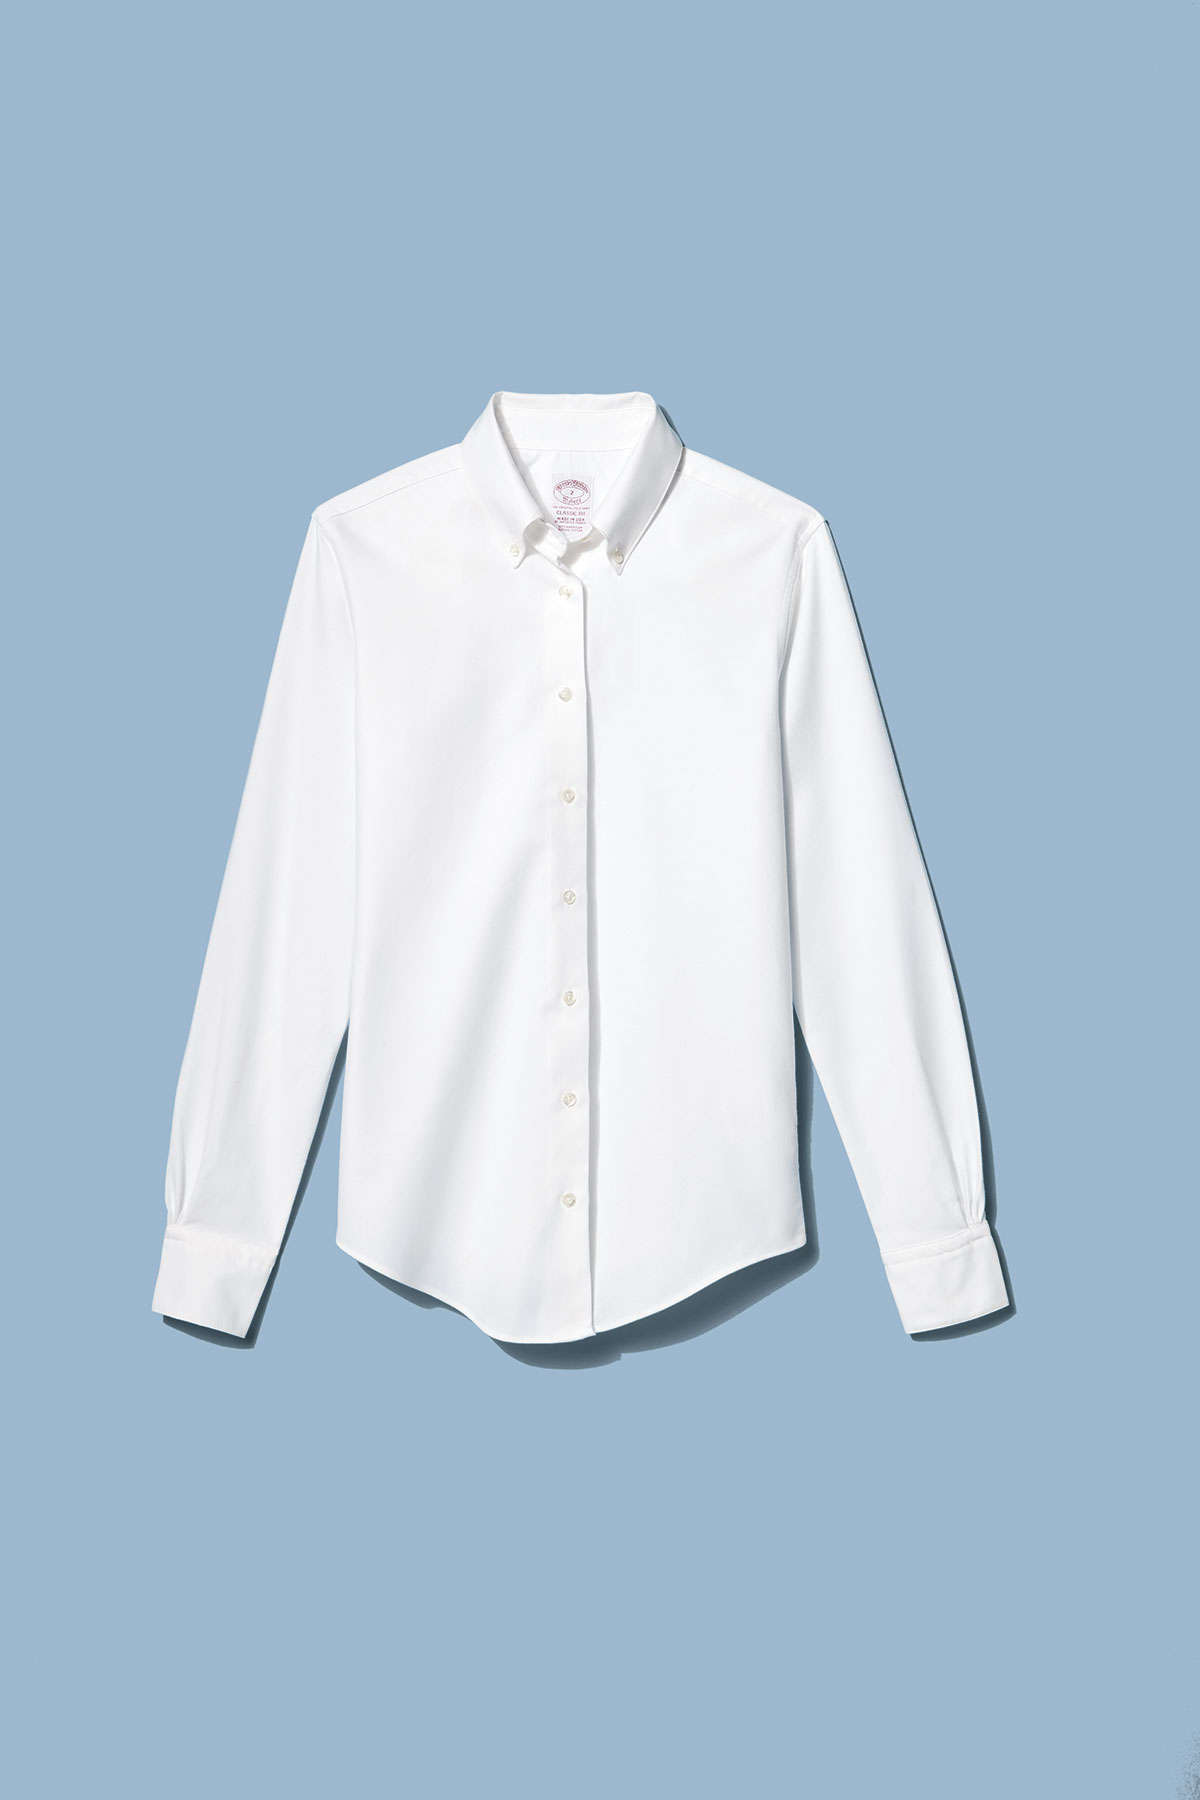 dd2aac69f75c0 The 10 Best White Shirts We ve Ever Worn